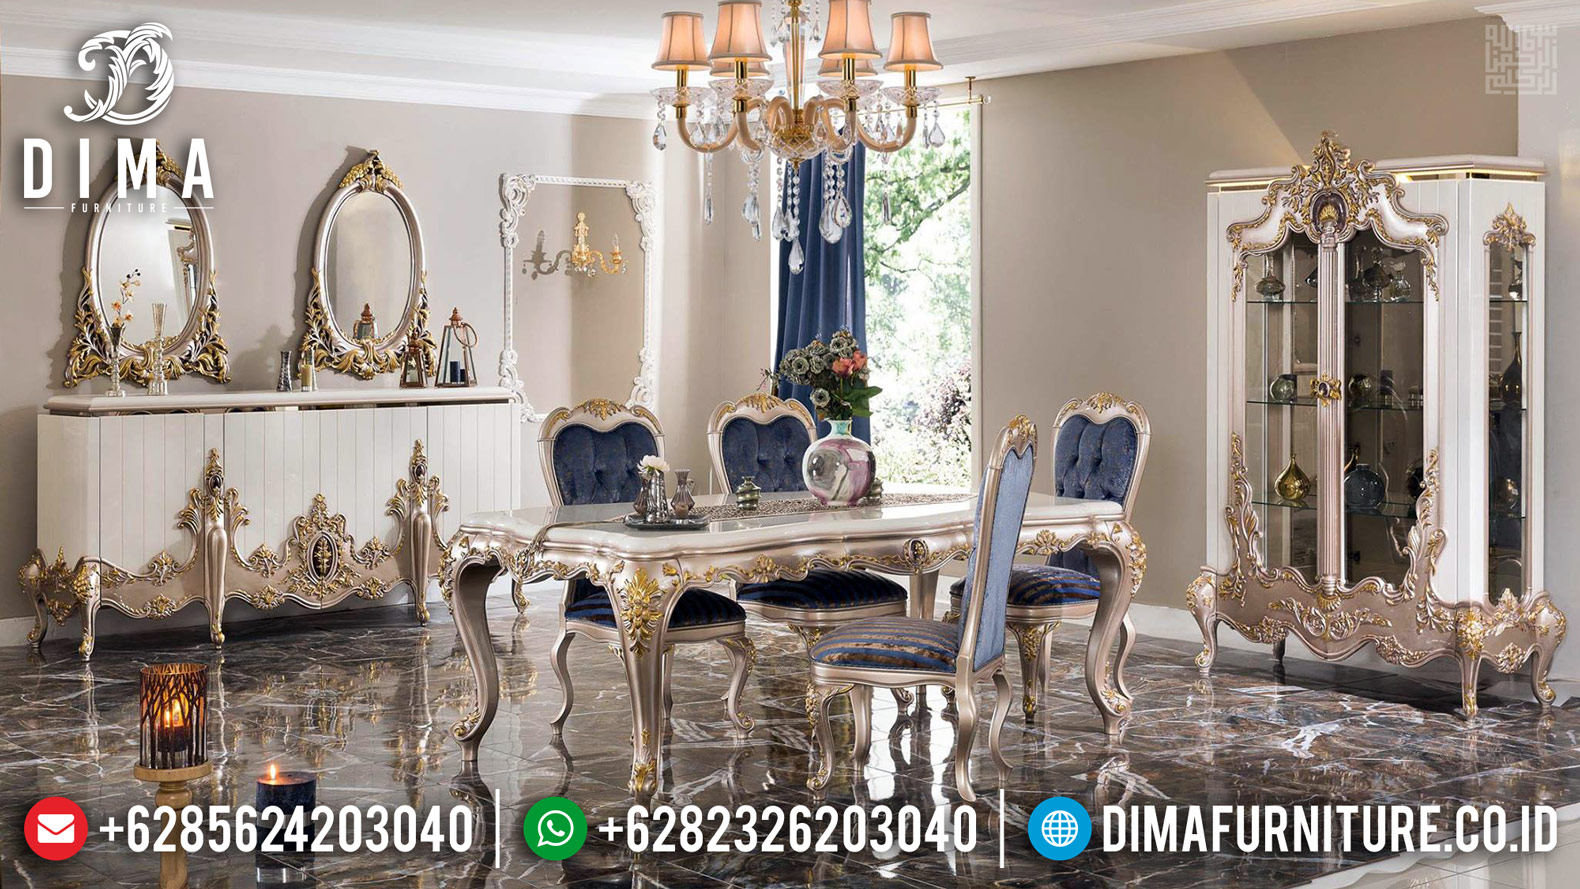 New Set Meja Makan Mewah Jepara Silver Champagne Glossy Color Luxury Classic Mm-0744